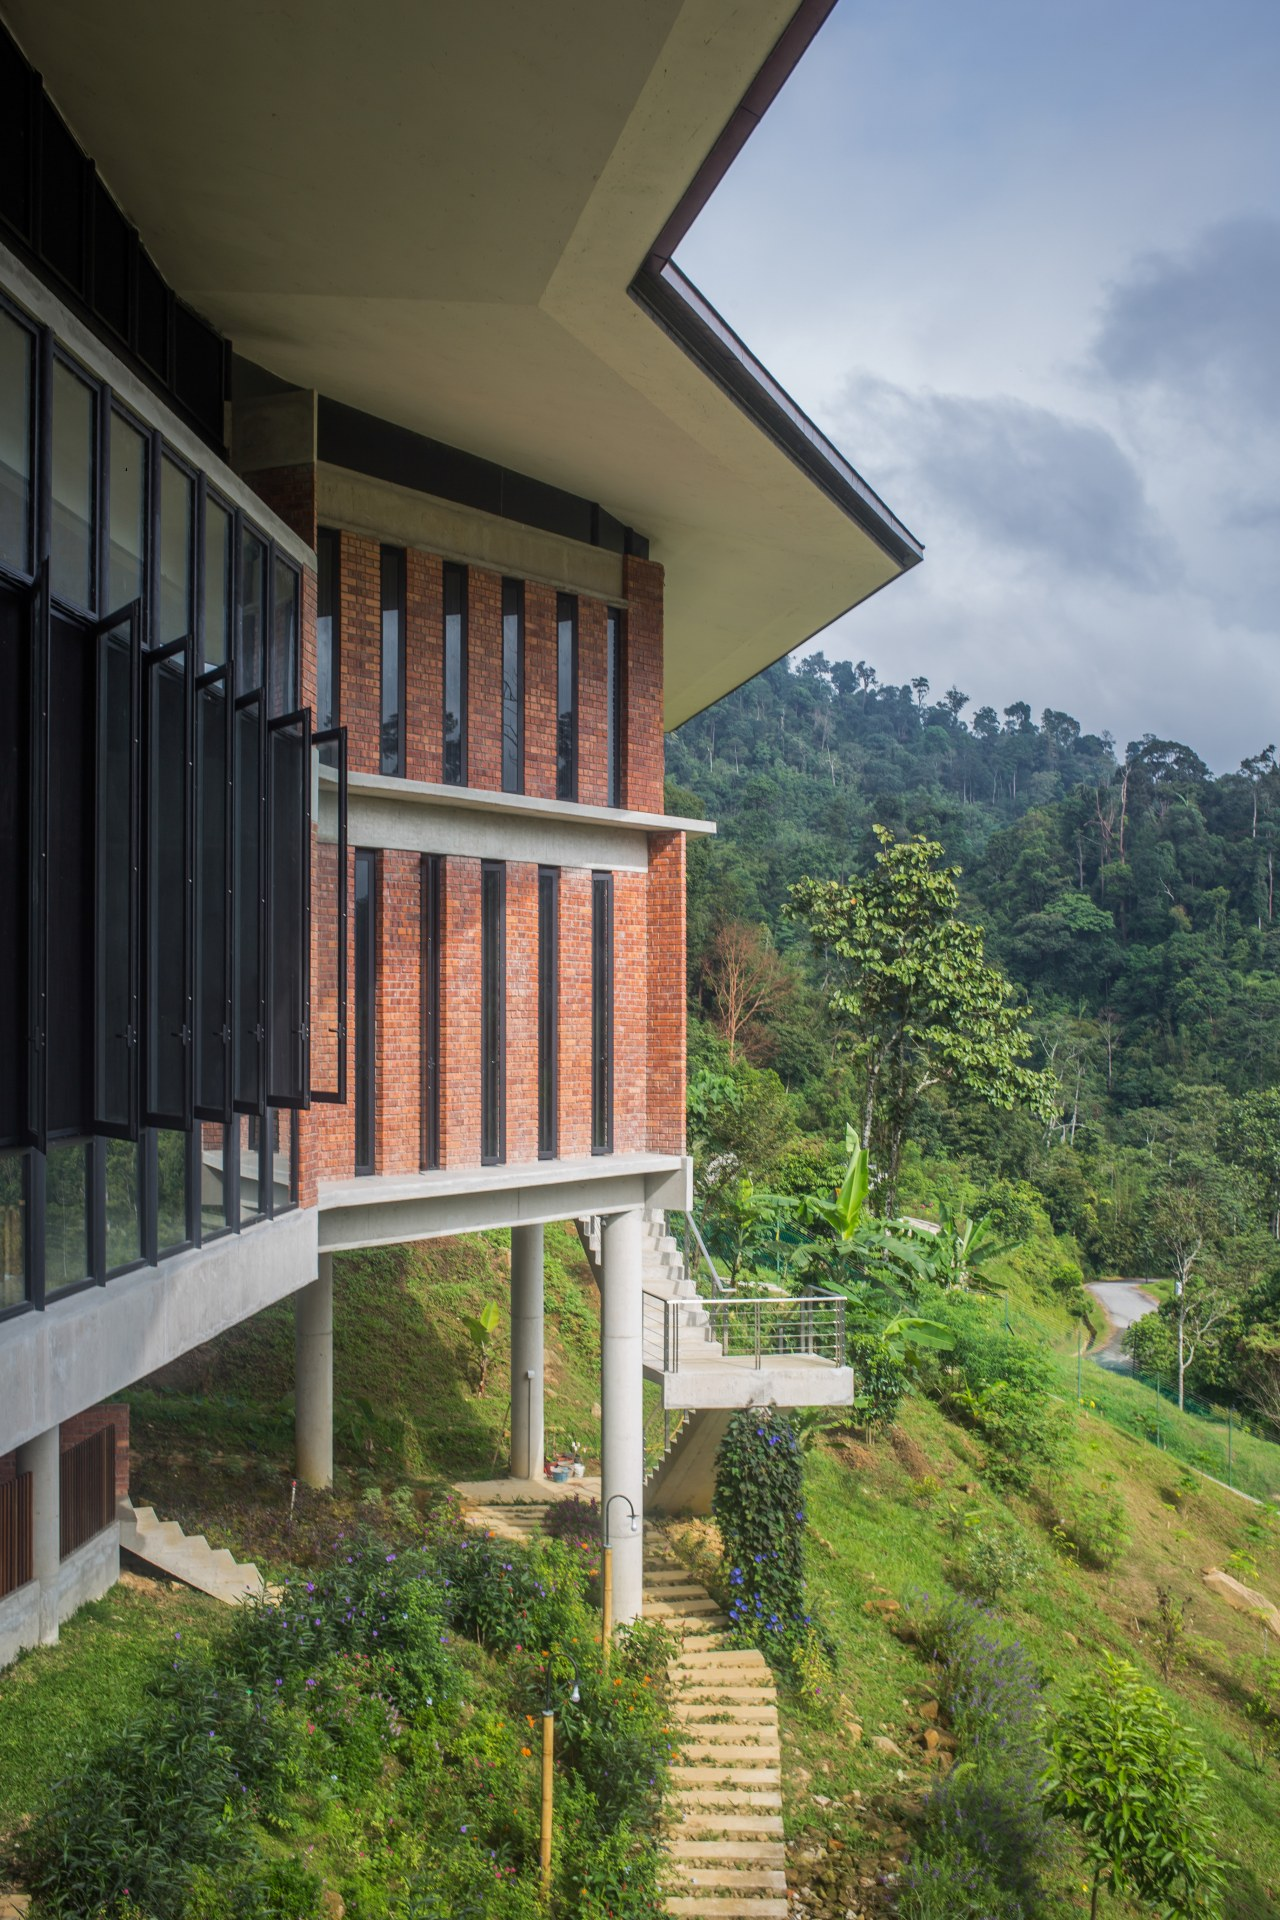 Apart from using natural raw materials as much architecture, balcony, building, facade, forest, green, hill station, home, house, landscape, property, real estate, residential area, sky, tree, vegetation, window, brown